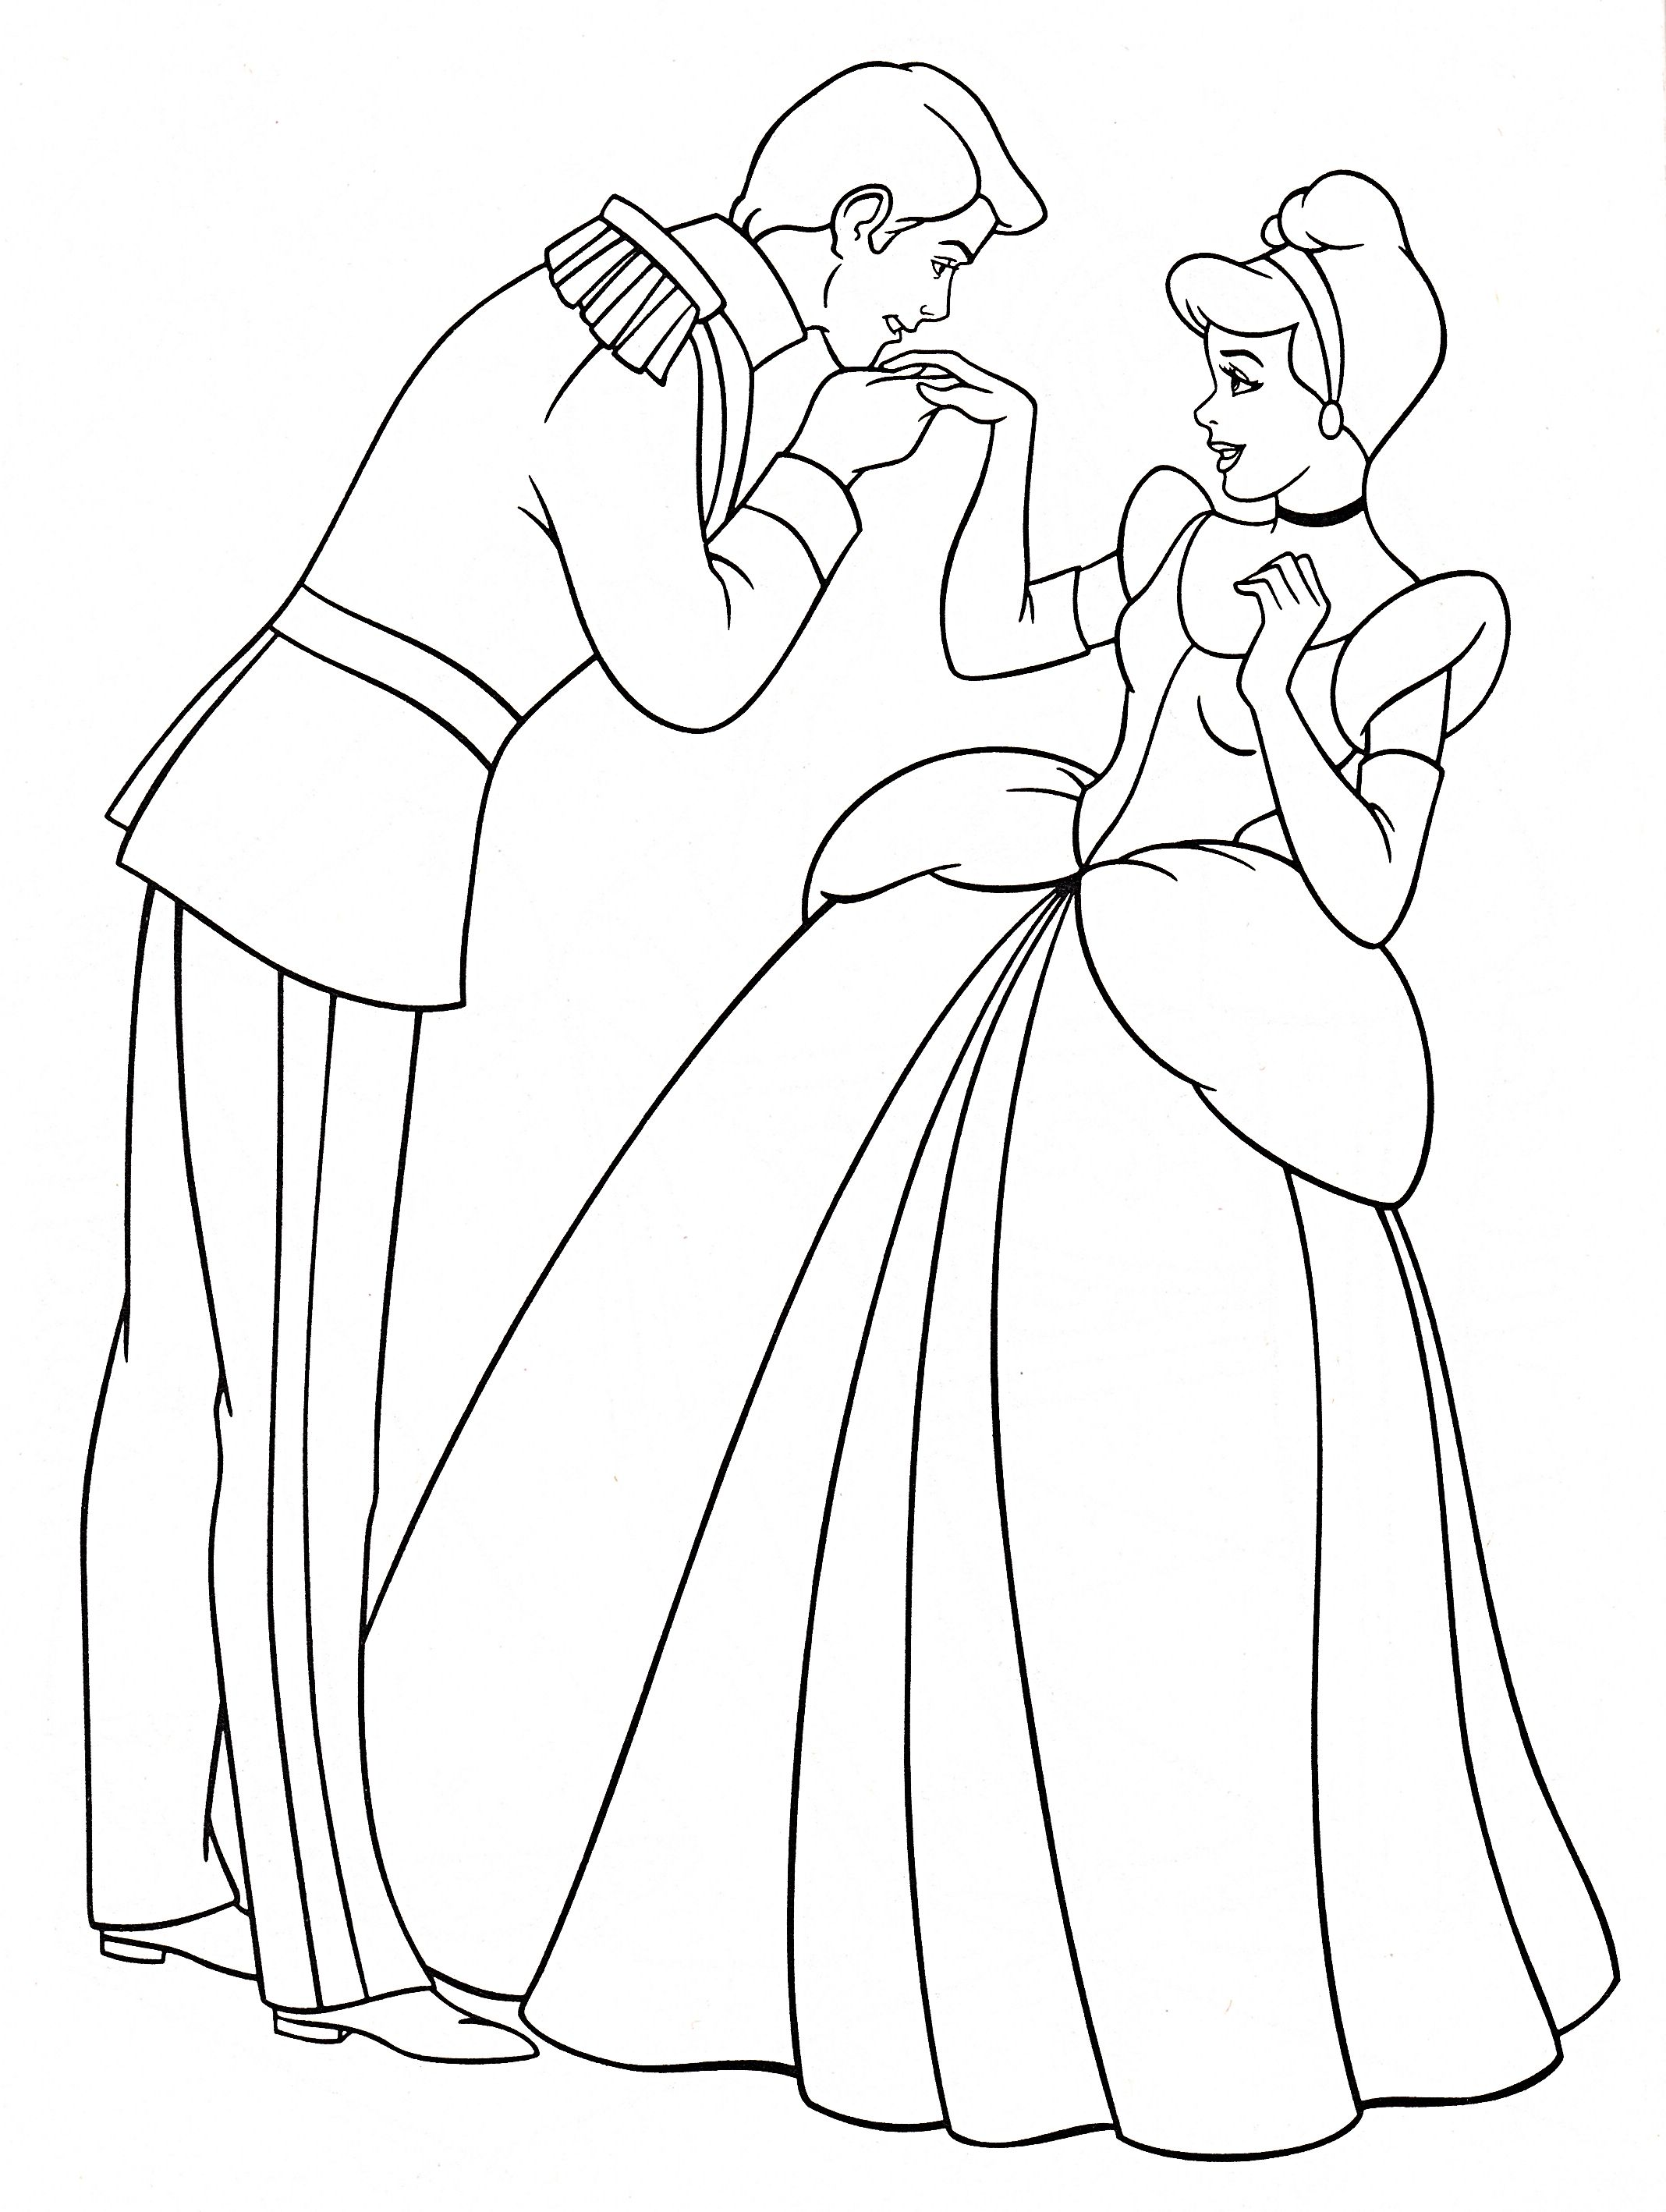 Coloring pictures cinderella - Walt Disney Coloring Pages Prince Charming Princess Cinderella